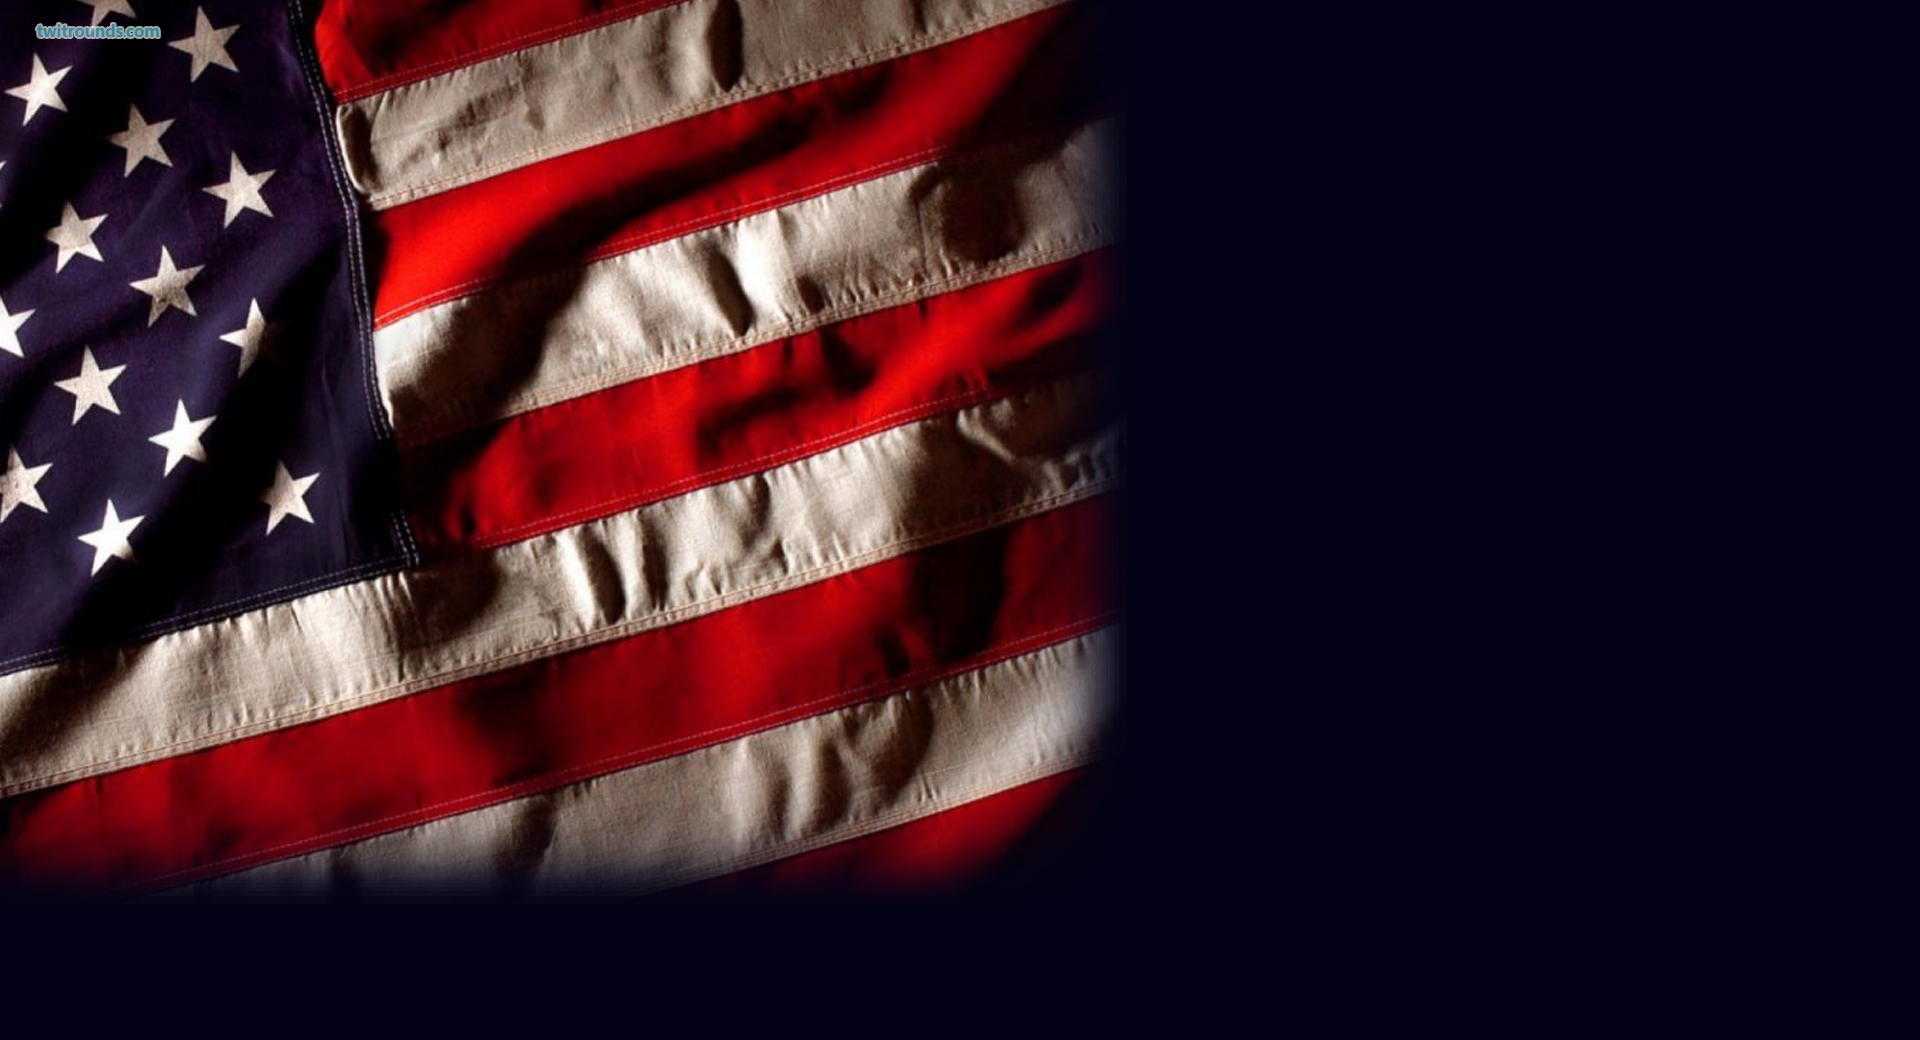 American Flag Wallpapers American Flag Backgrounds Live HD 1920x1040